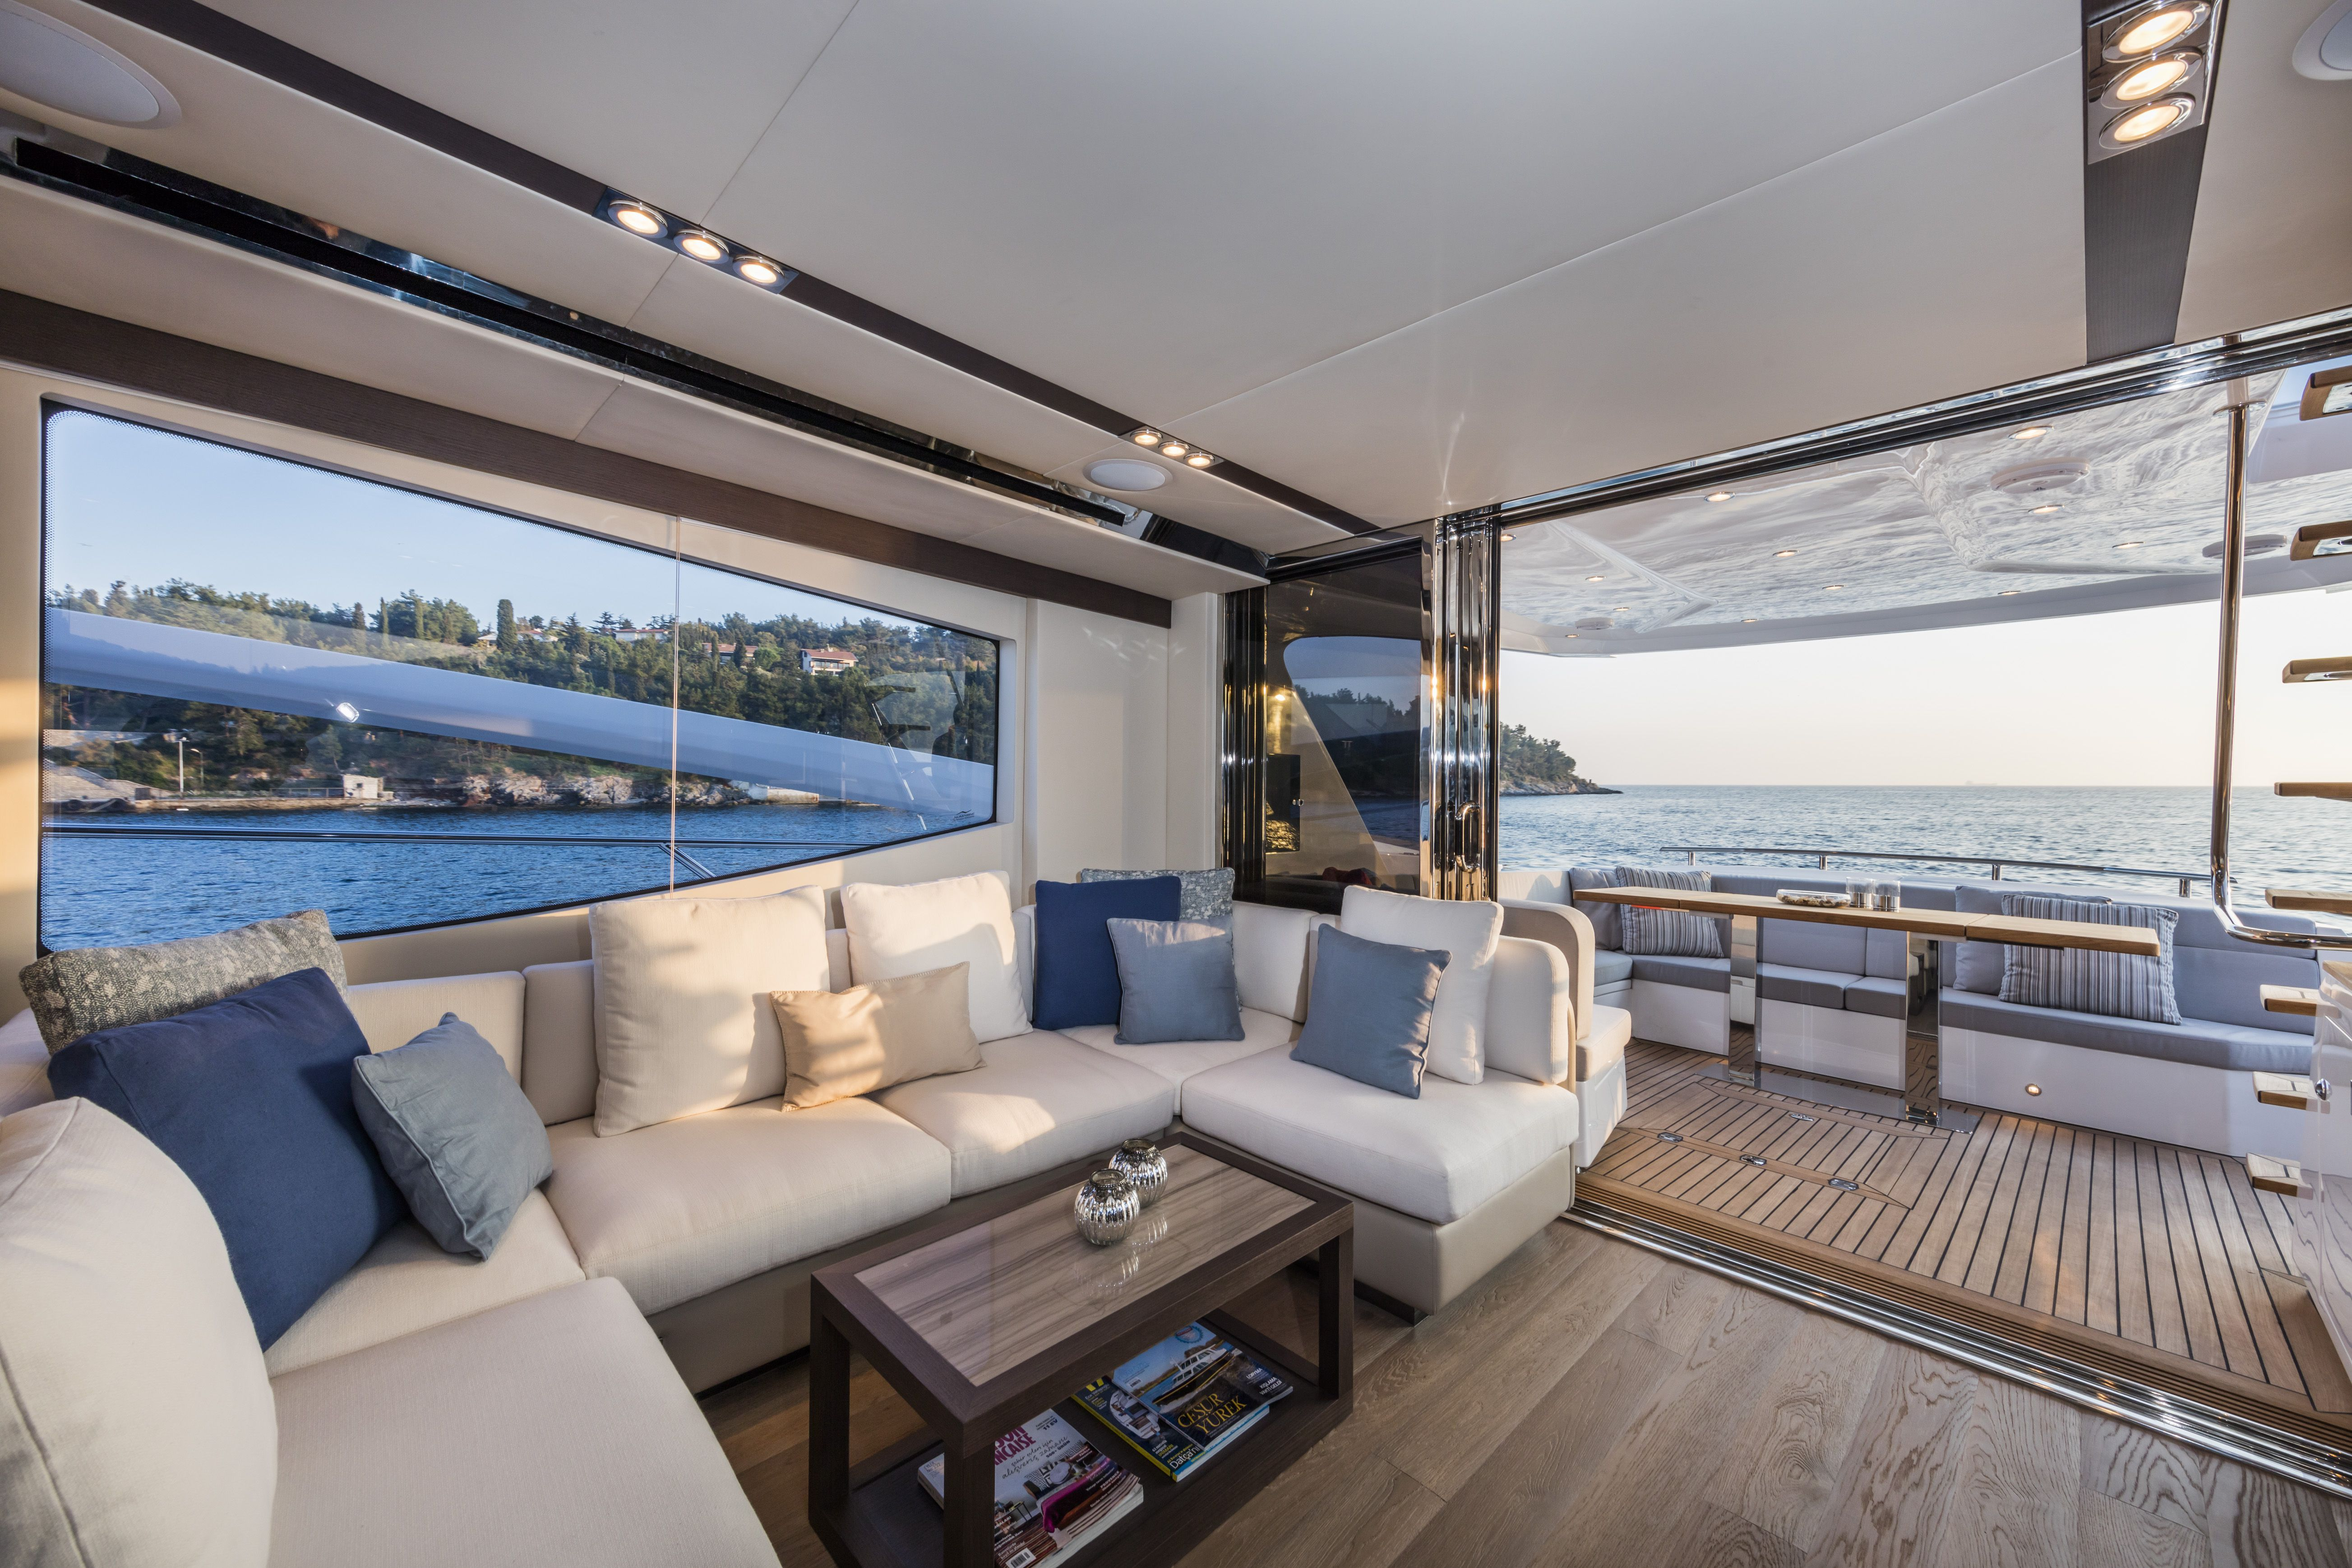 Numarine 60 Flybridge World Debut In Miami 2016